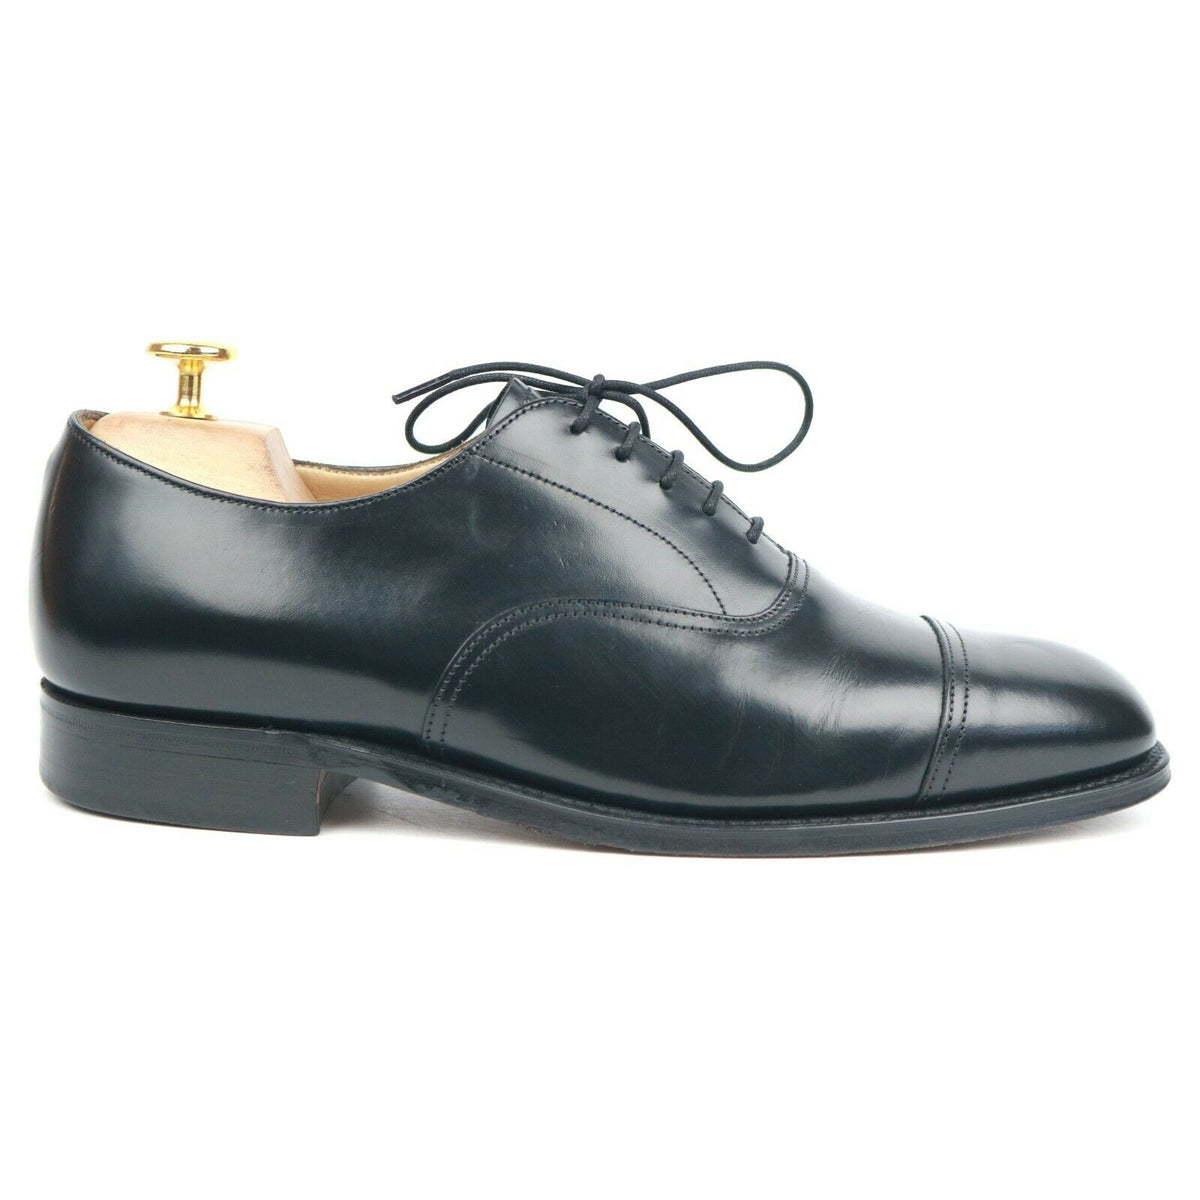 Cheaney Black Leather Oxford UK 7 G